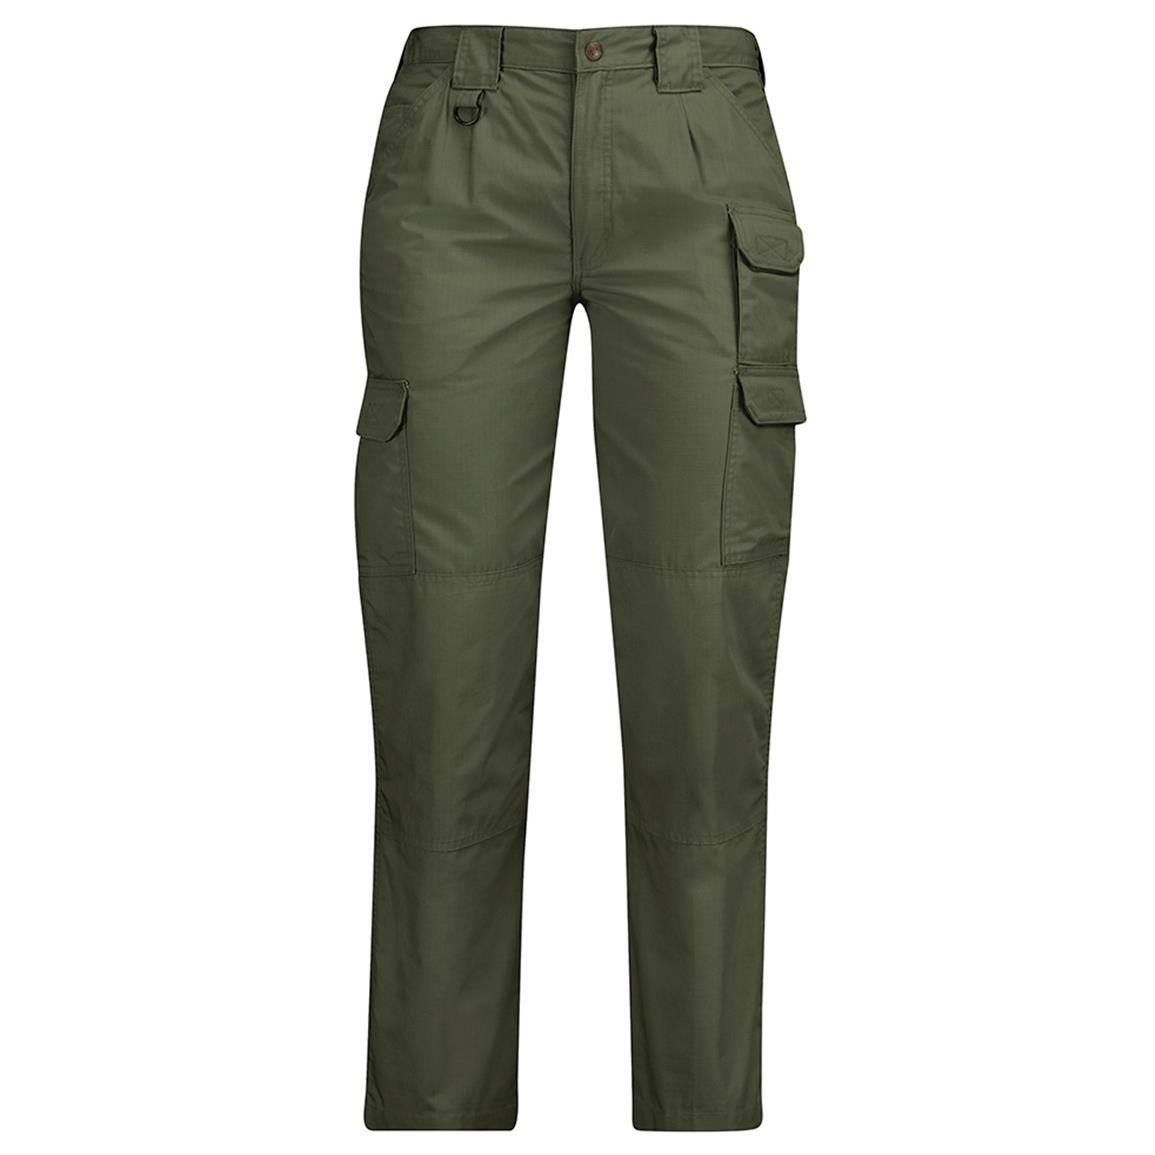 Propper Women's Lightweight Tactical Pants, Olive Green